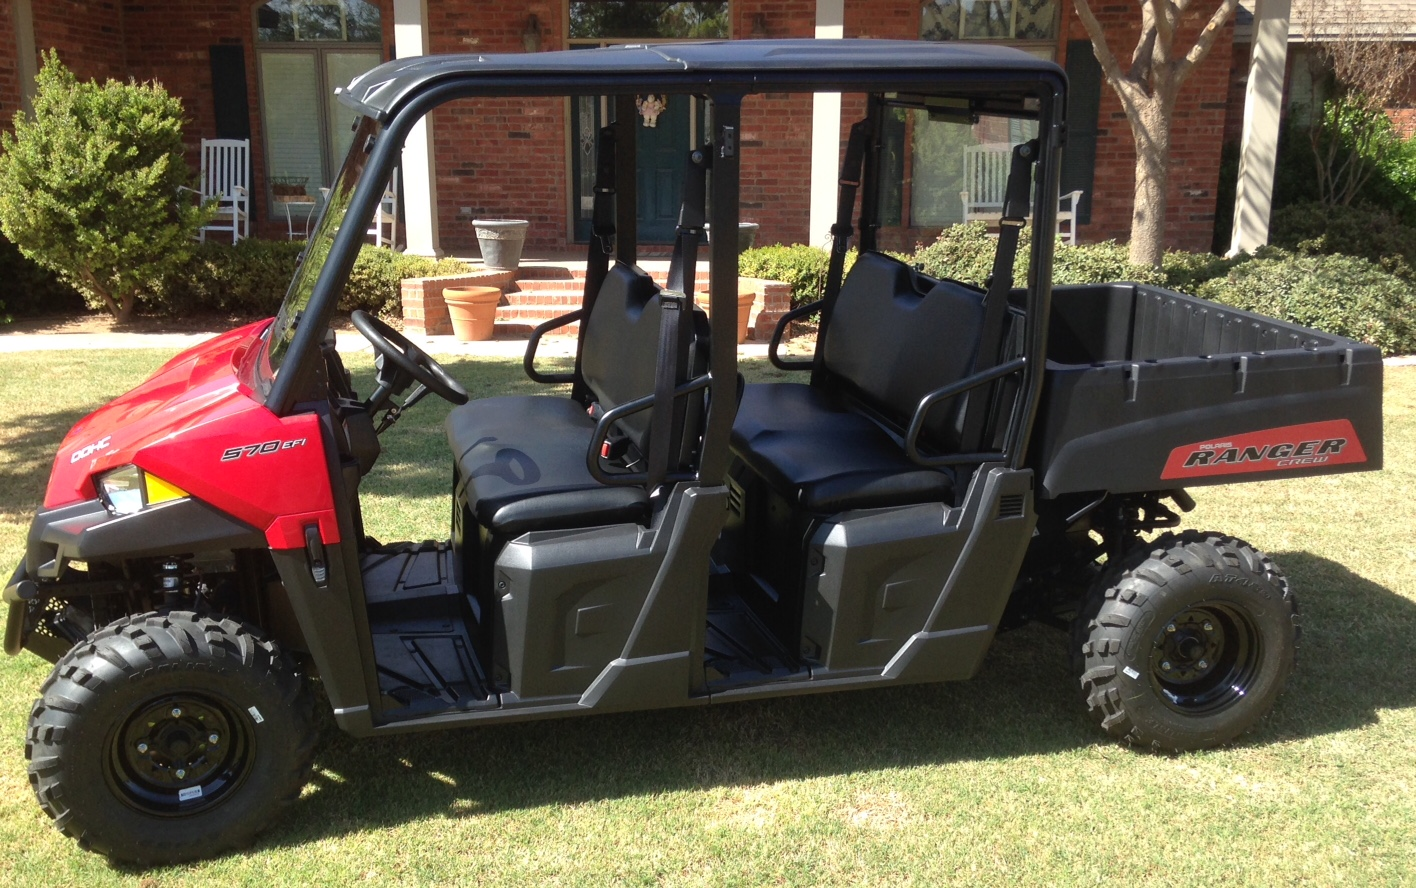 2015 polaris ranger 570 midsize crew with eps and more. Black Bedroom Furniture Sets. Home Design Ideas